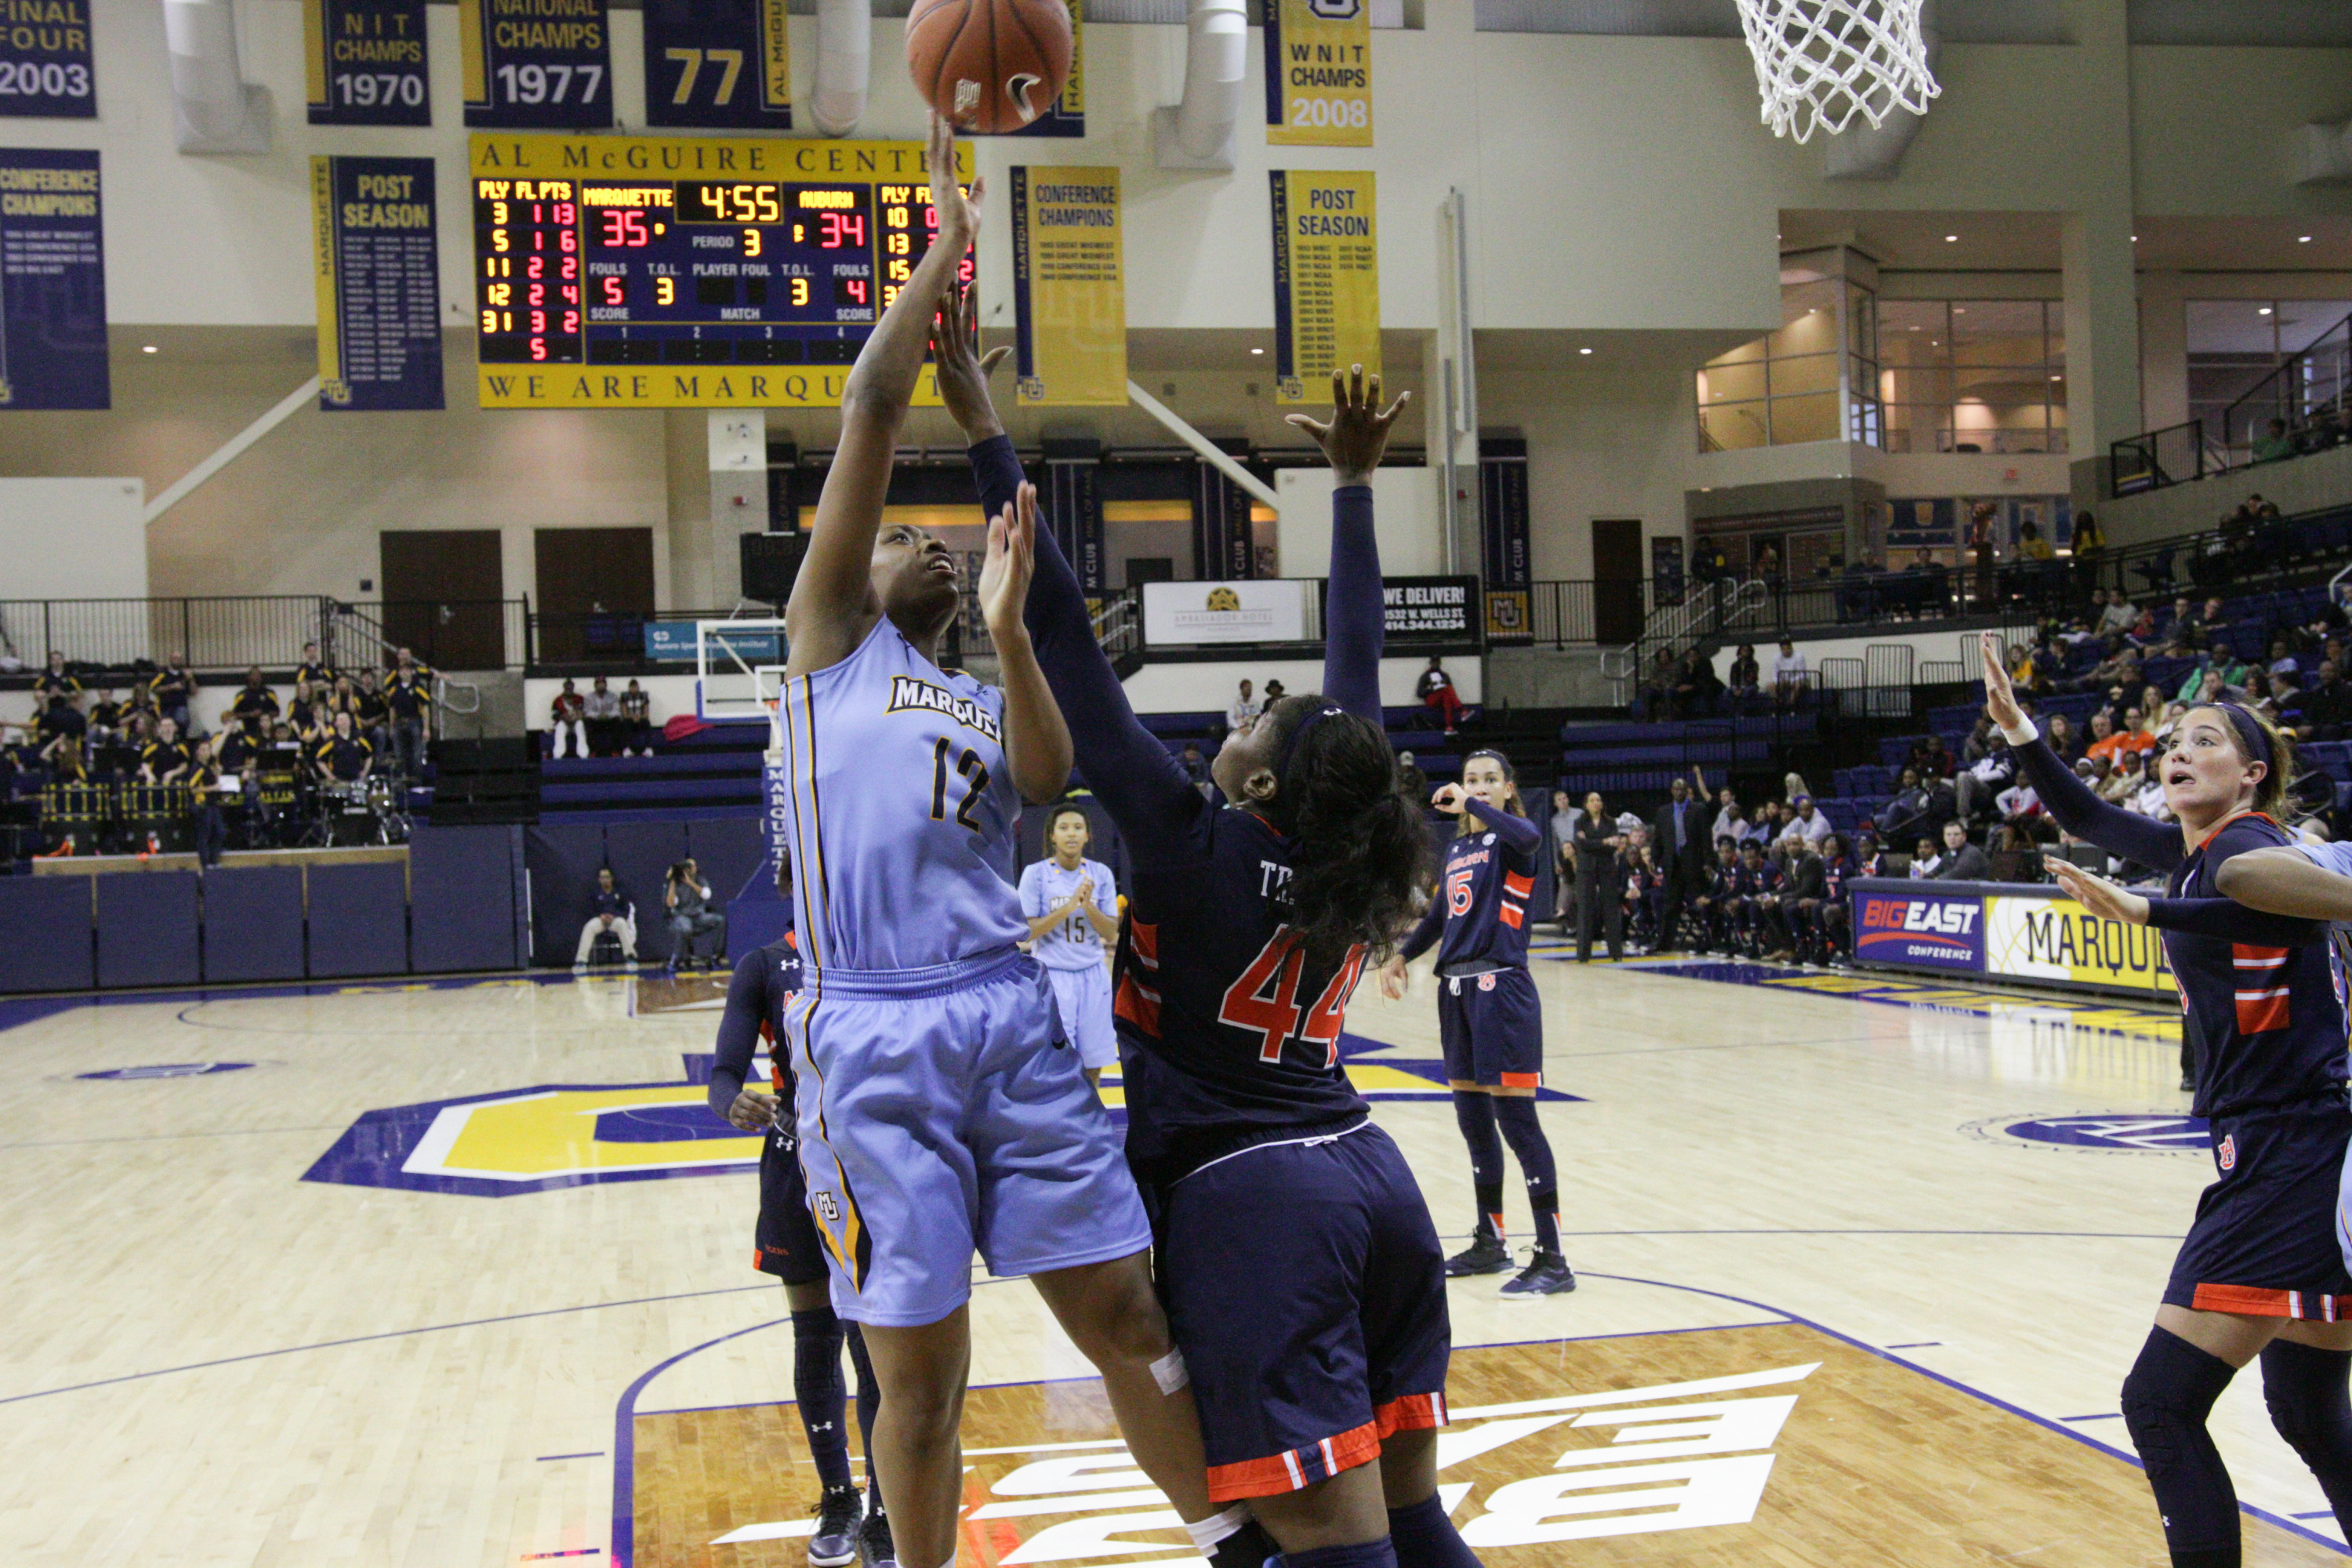 Erika Davenport recorded her second double-double of the season with 18 points, 10 rebounds.